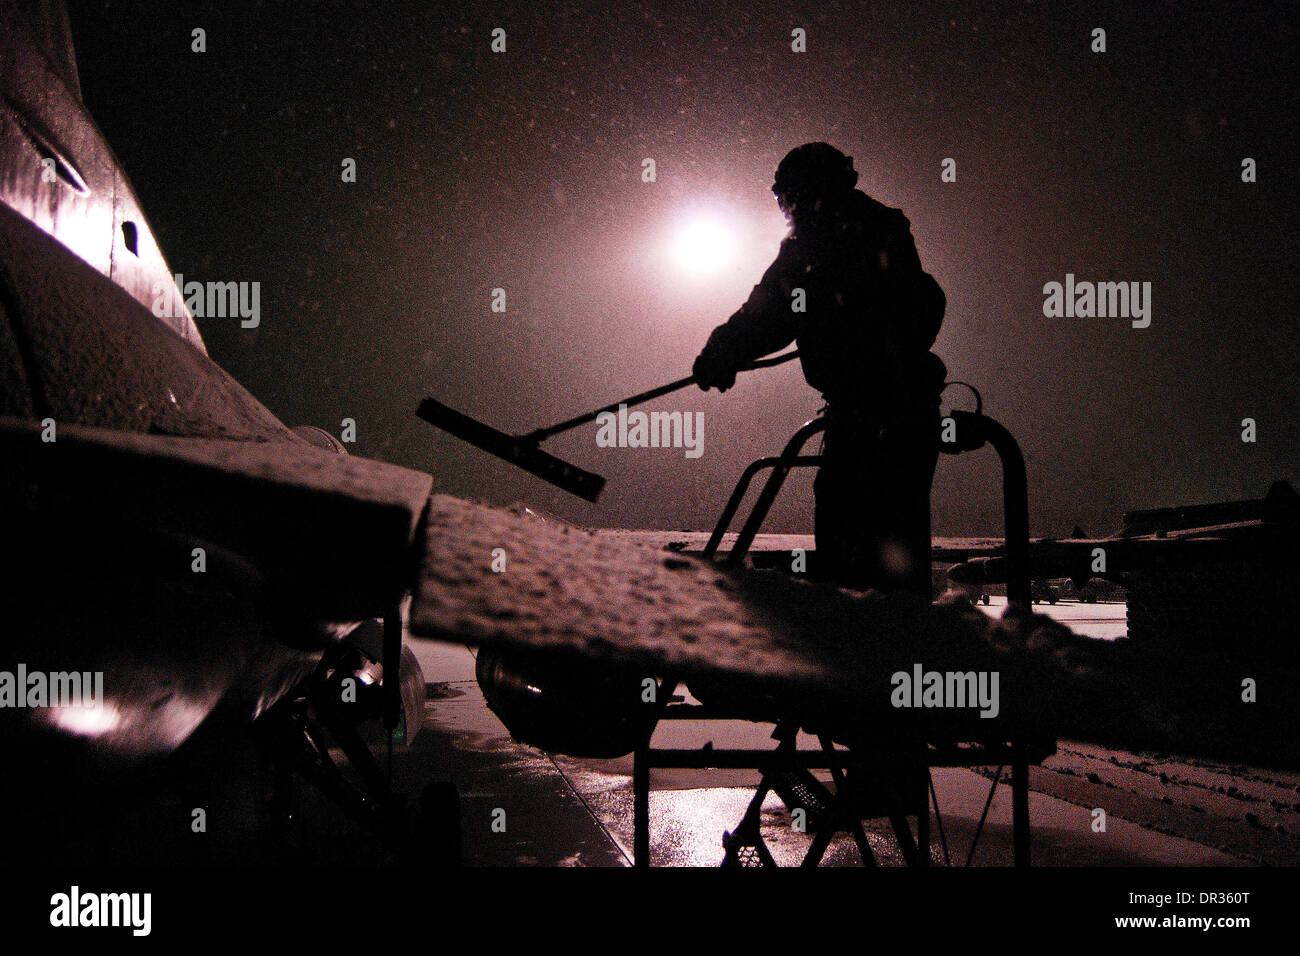 U.S. Airman clears snow off a F-16 Fighting Falcon, Afghanistan. - Stock Image